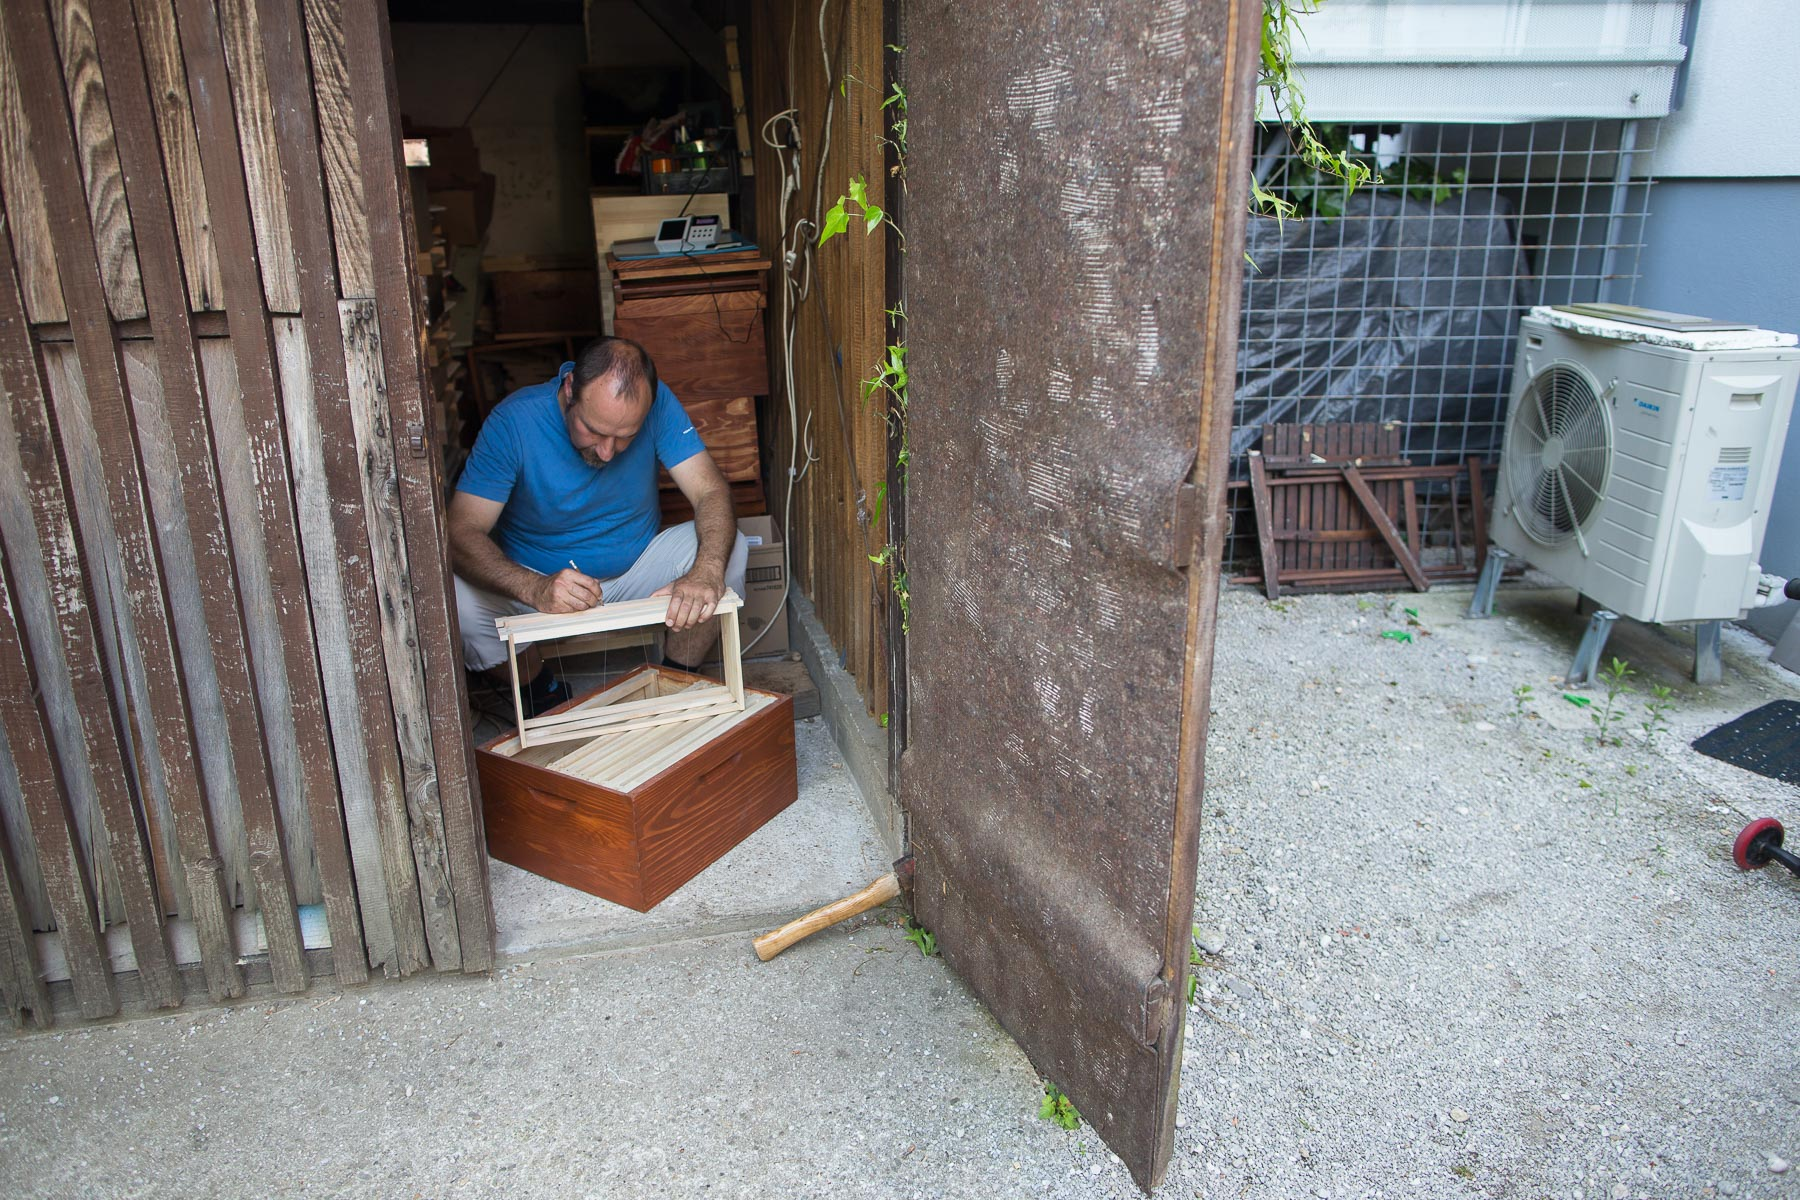 Trušnovec prepares hive frames in his shed at home. As part of his Rent-a-hive service, he needs to take care of all the rented beehives in the city. When bees are most active he must regularily add hives and frames to accomodate all the bees.